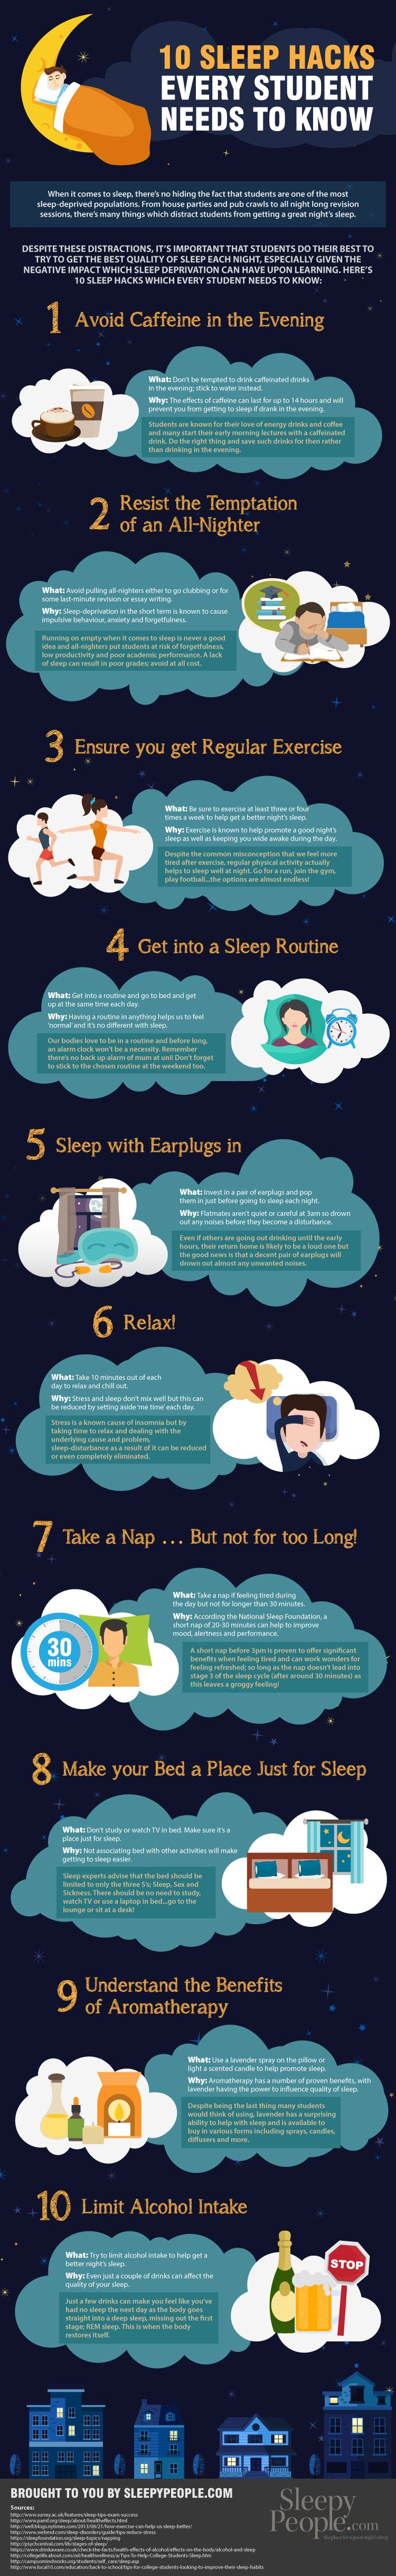 10 Sleep Hacks Every Student Needs To Know